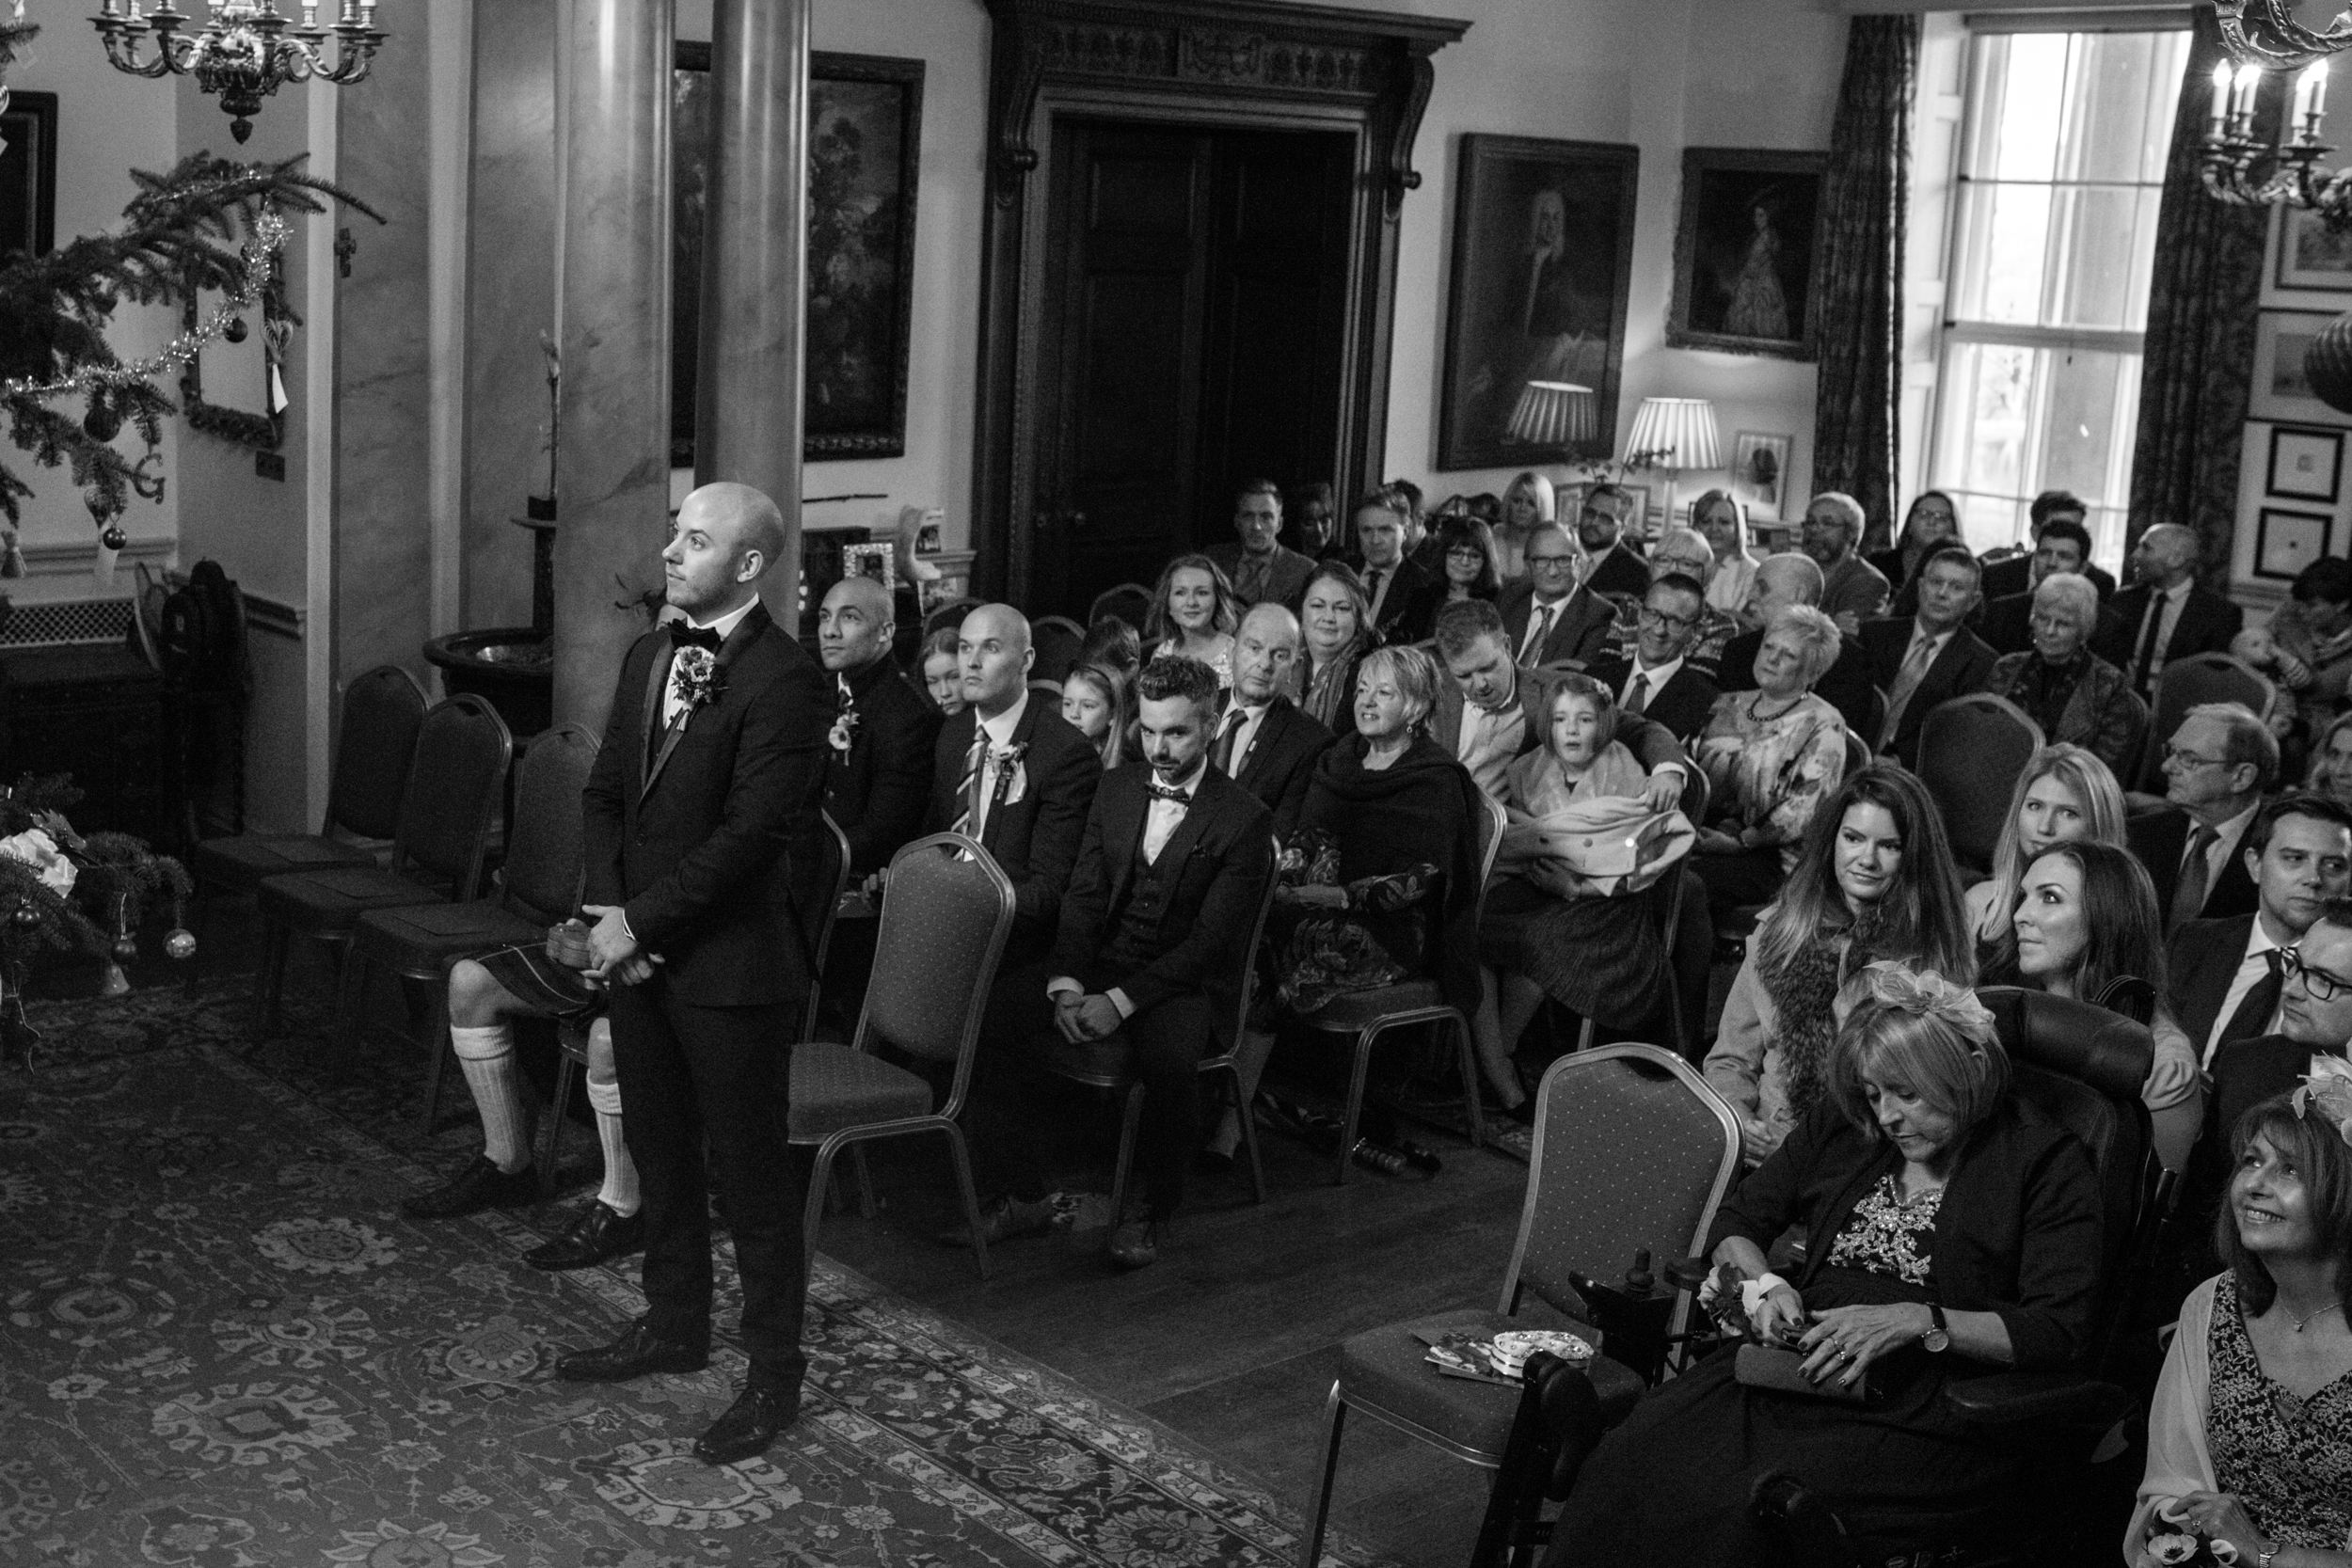 Groom waiting for bride at Walcot Hall